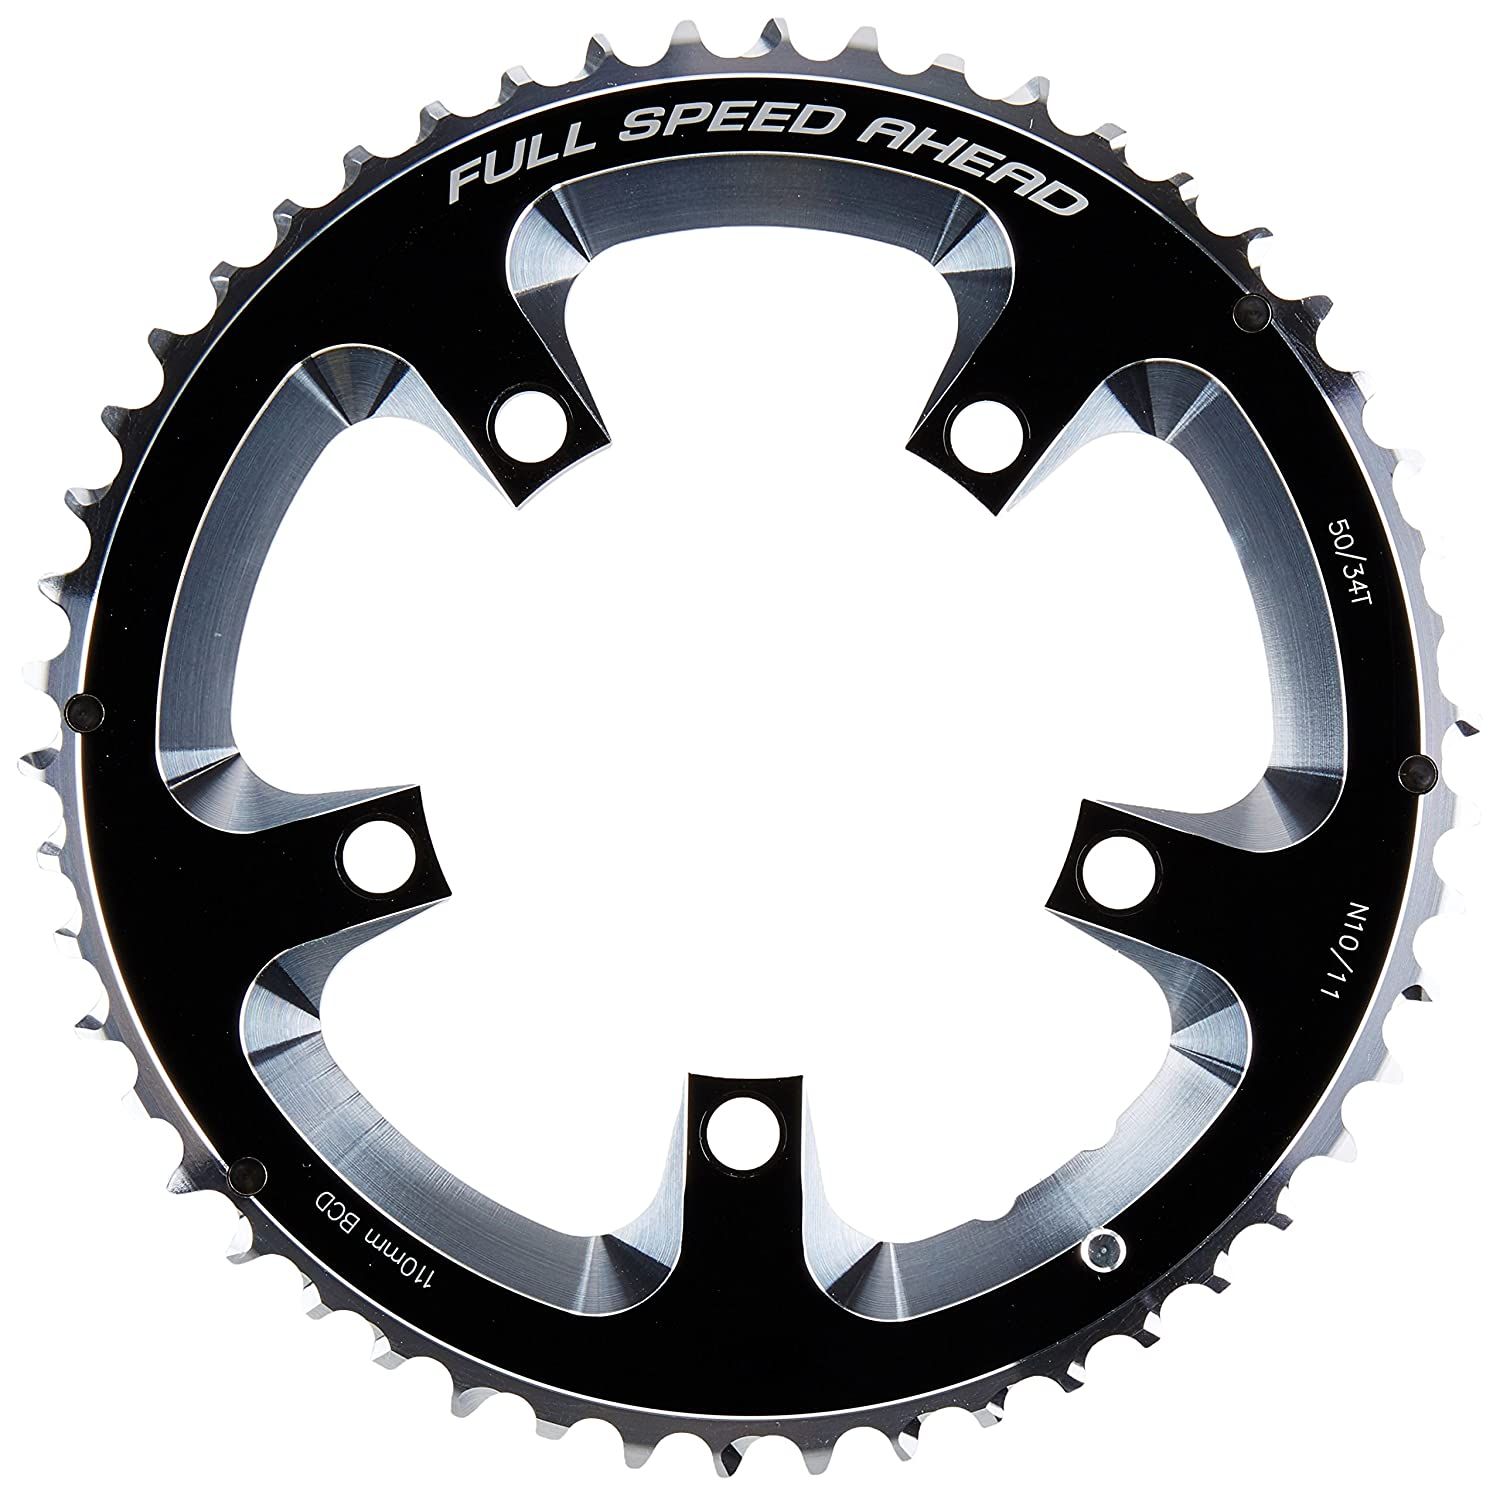 FSA Super Road Chainring B006GV0IWW Outer|50T 50T Outer